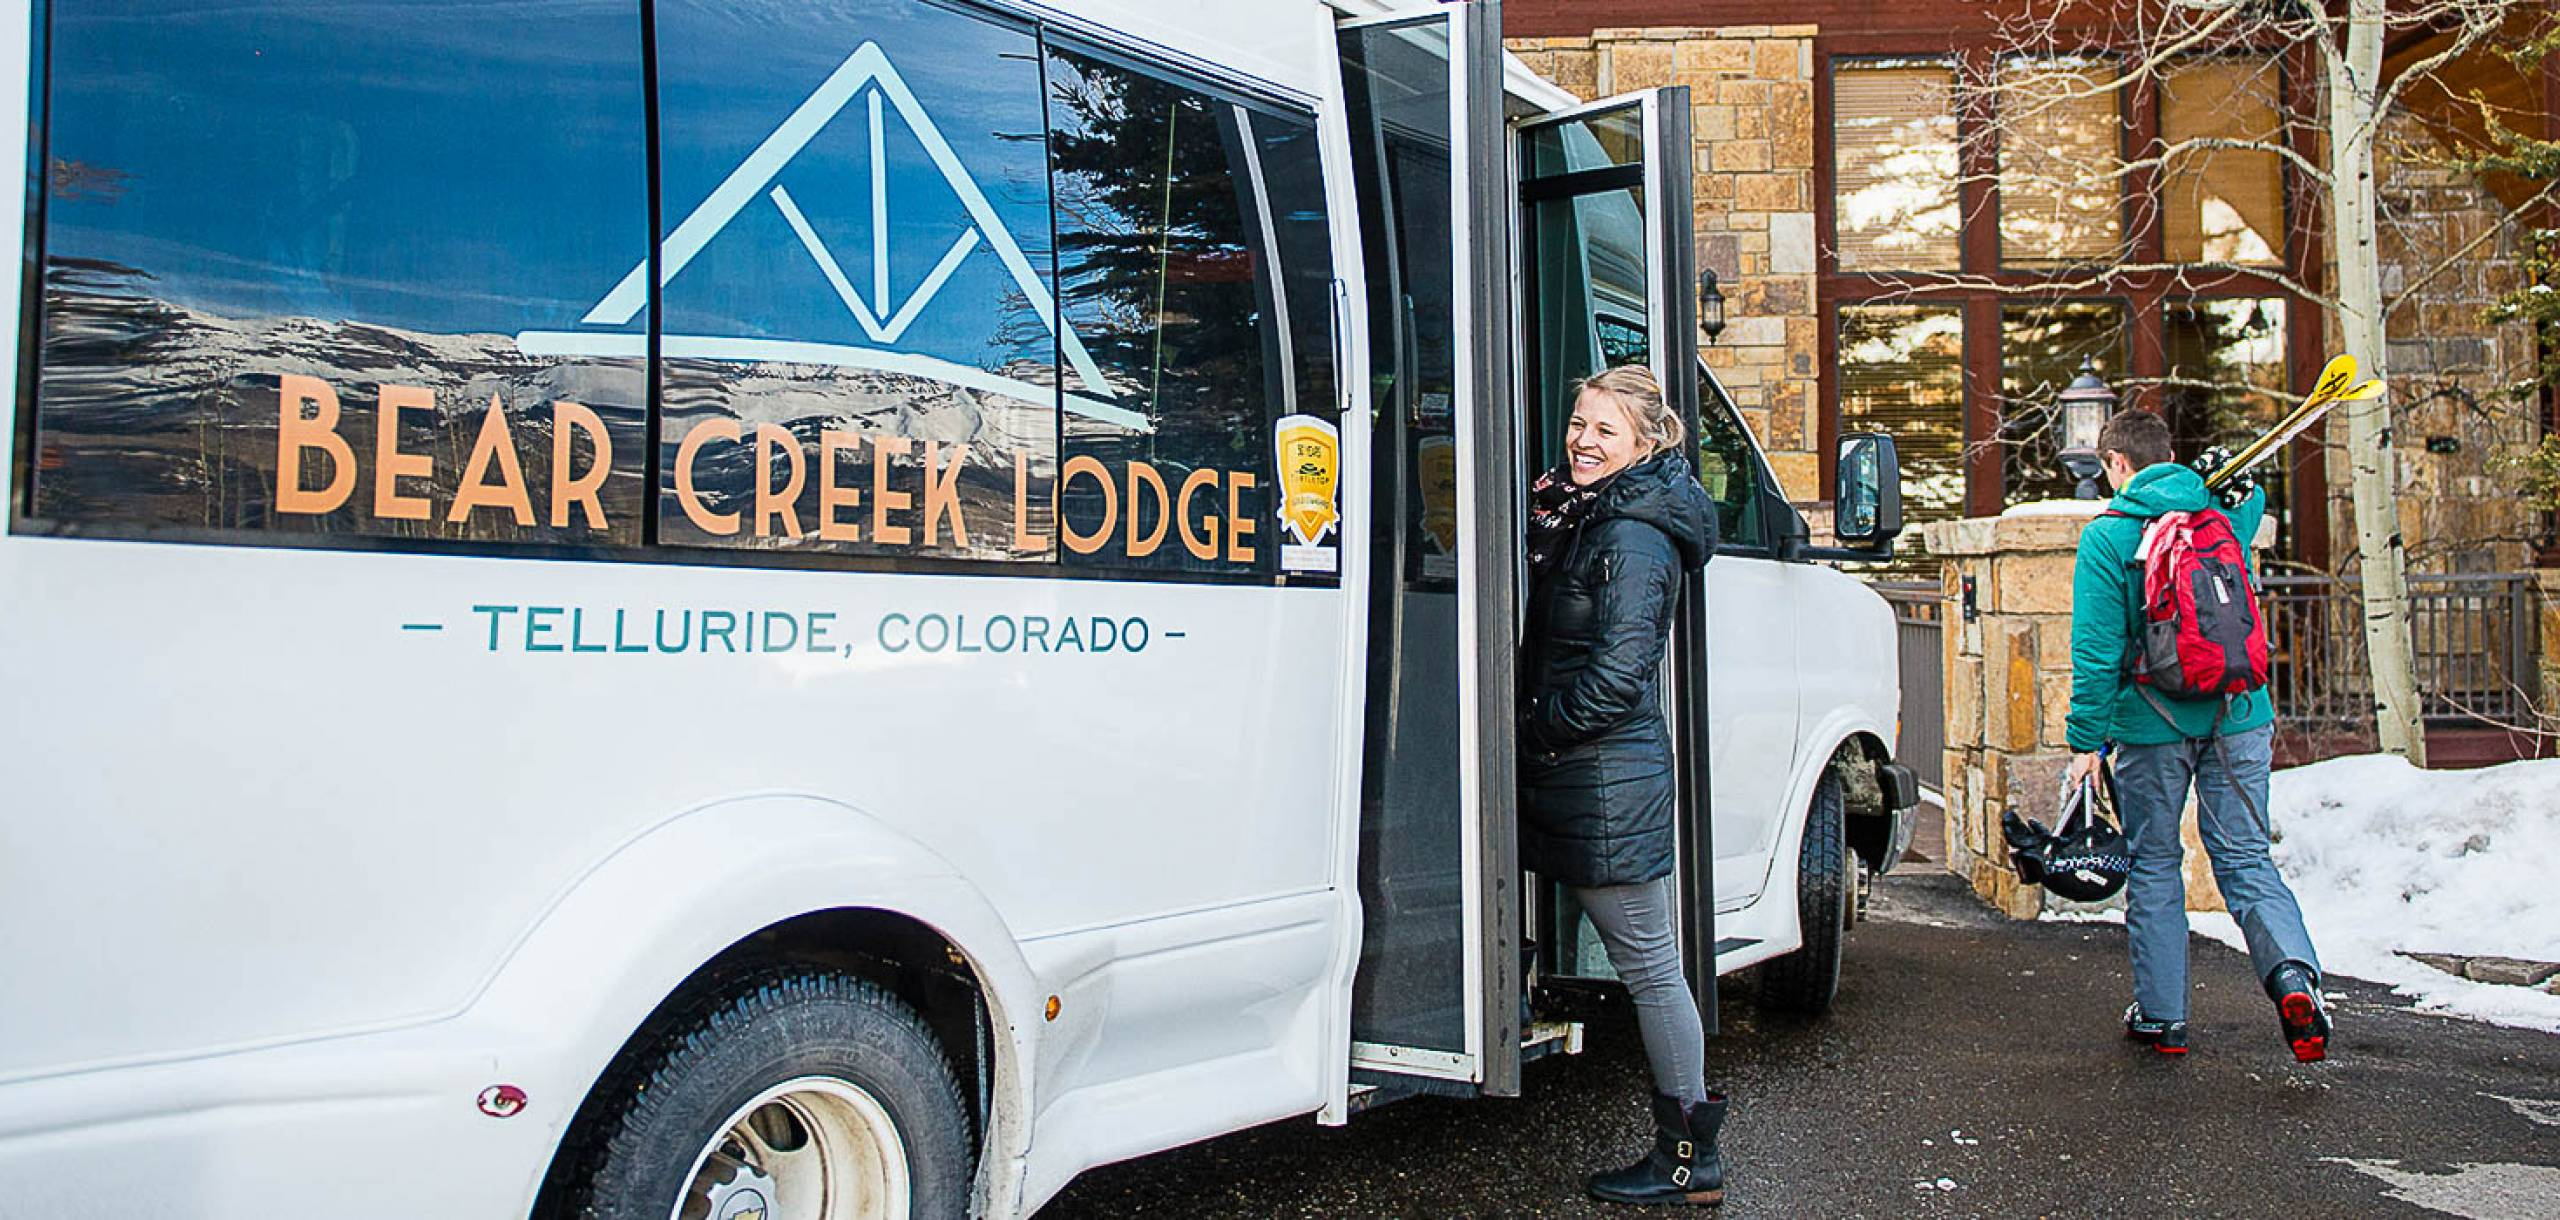 Bear Creek Lodge Telluride Shuttle